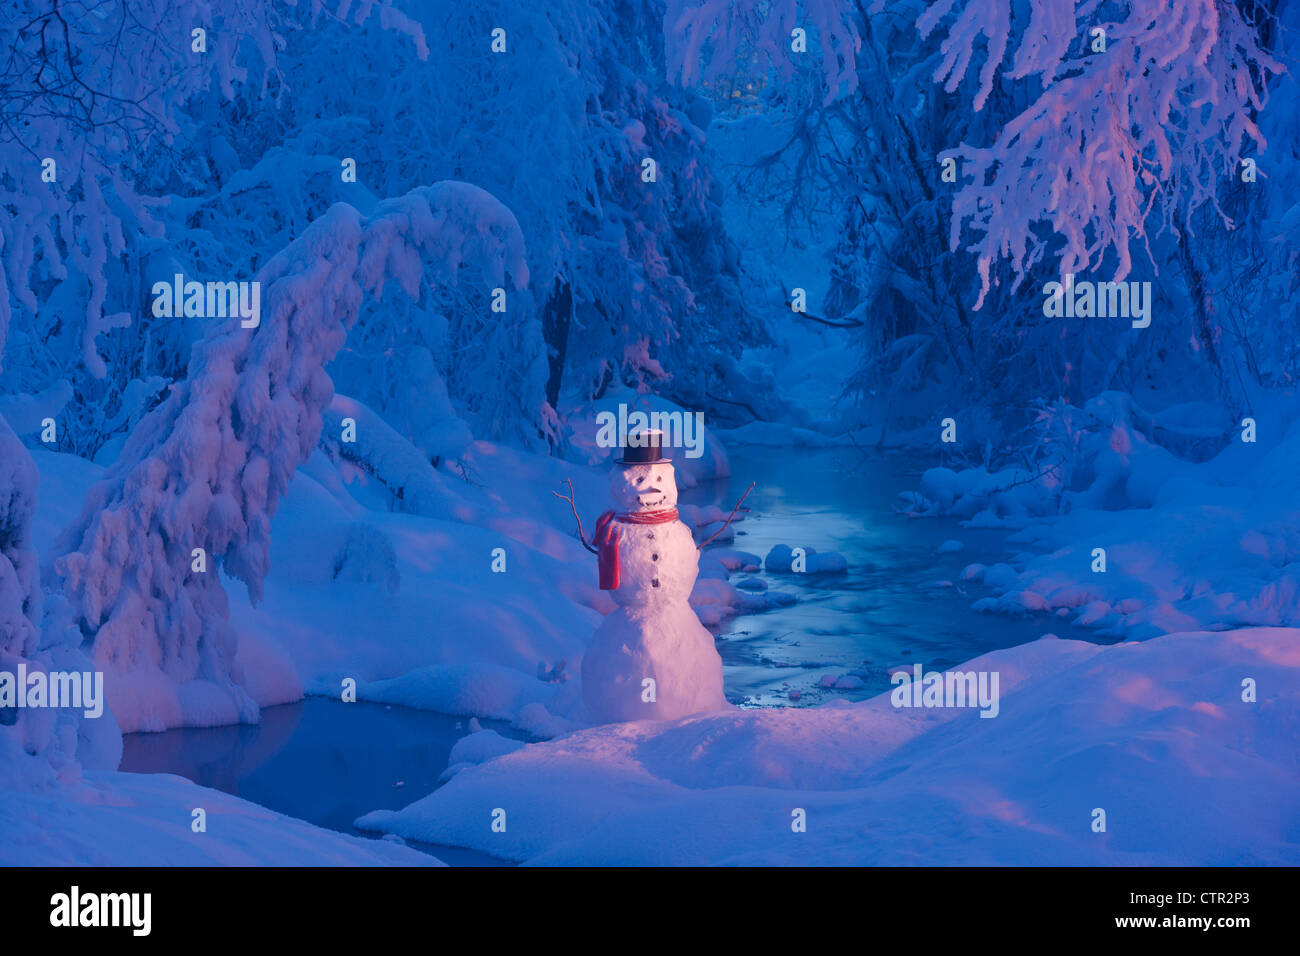 Snowman wearing black scarf top hat standing next small stream in hoarfrost covered forest twilight Russian Jack - Stock Image